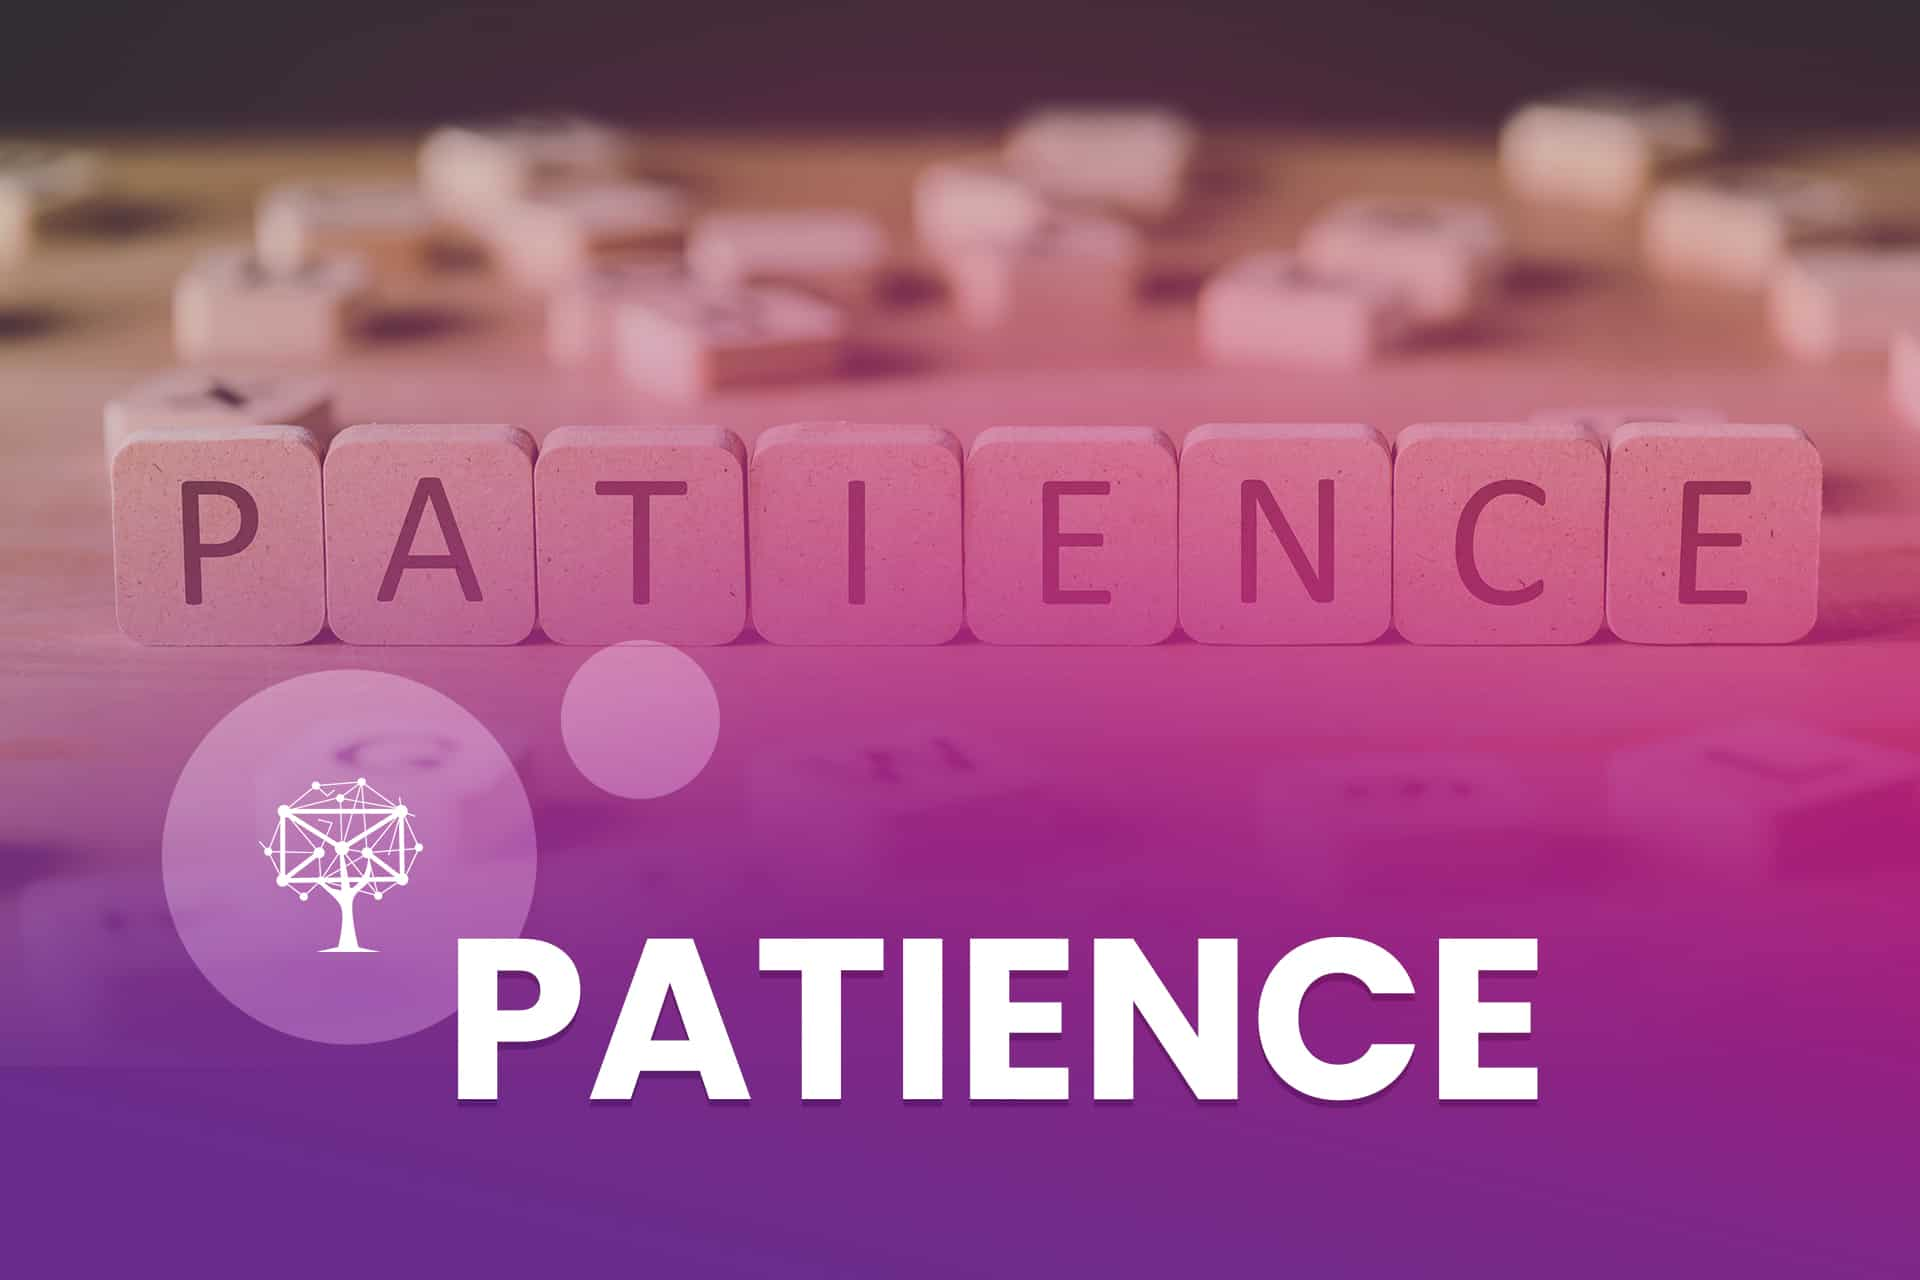 To be successful in customer service, patience is essential